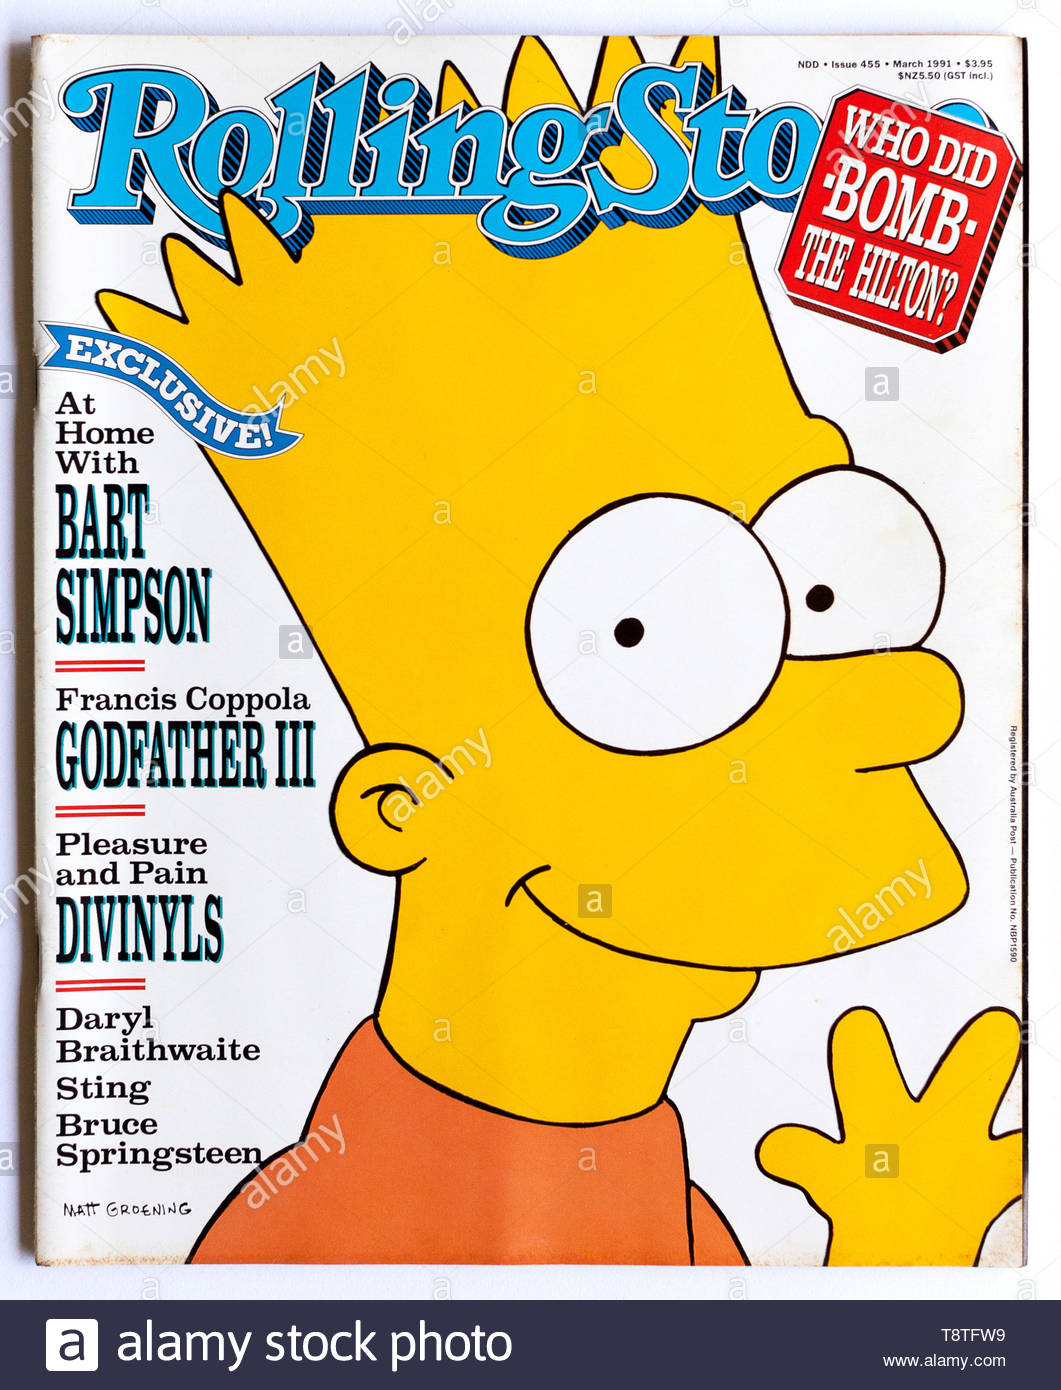 The cover of Rolling Stone magazine, issue 455, March 1991, featuring Bart Simpson - Stock Image